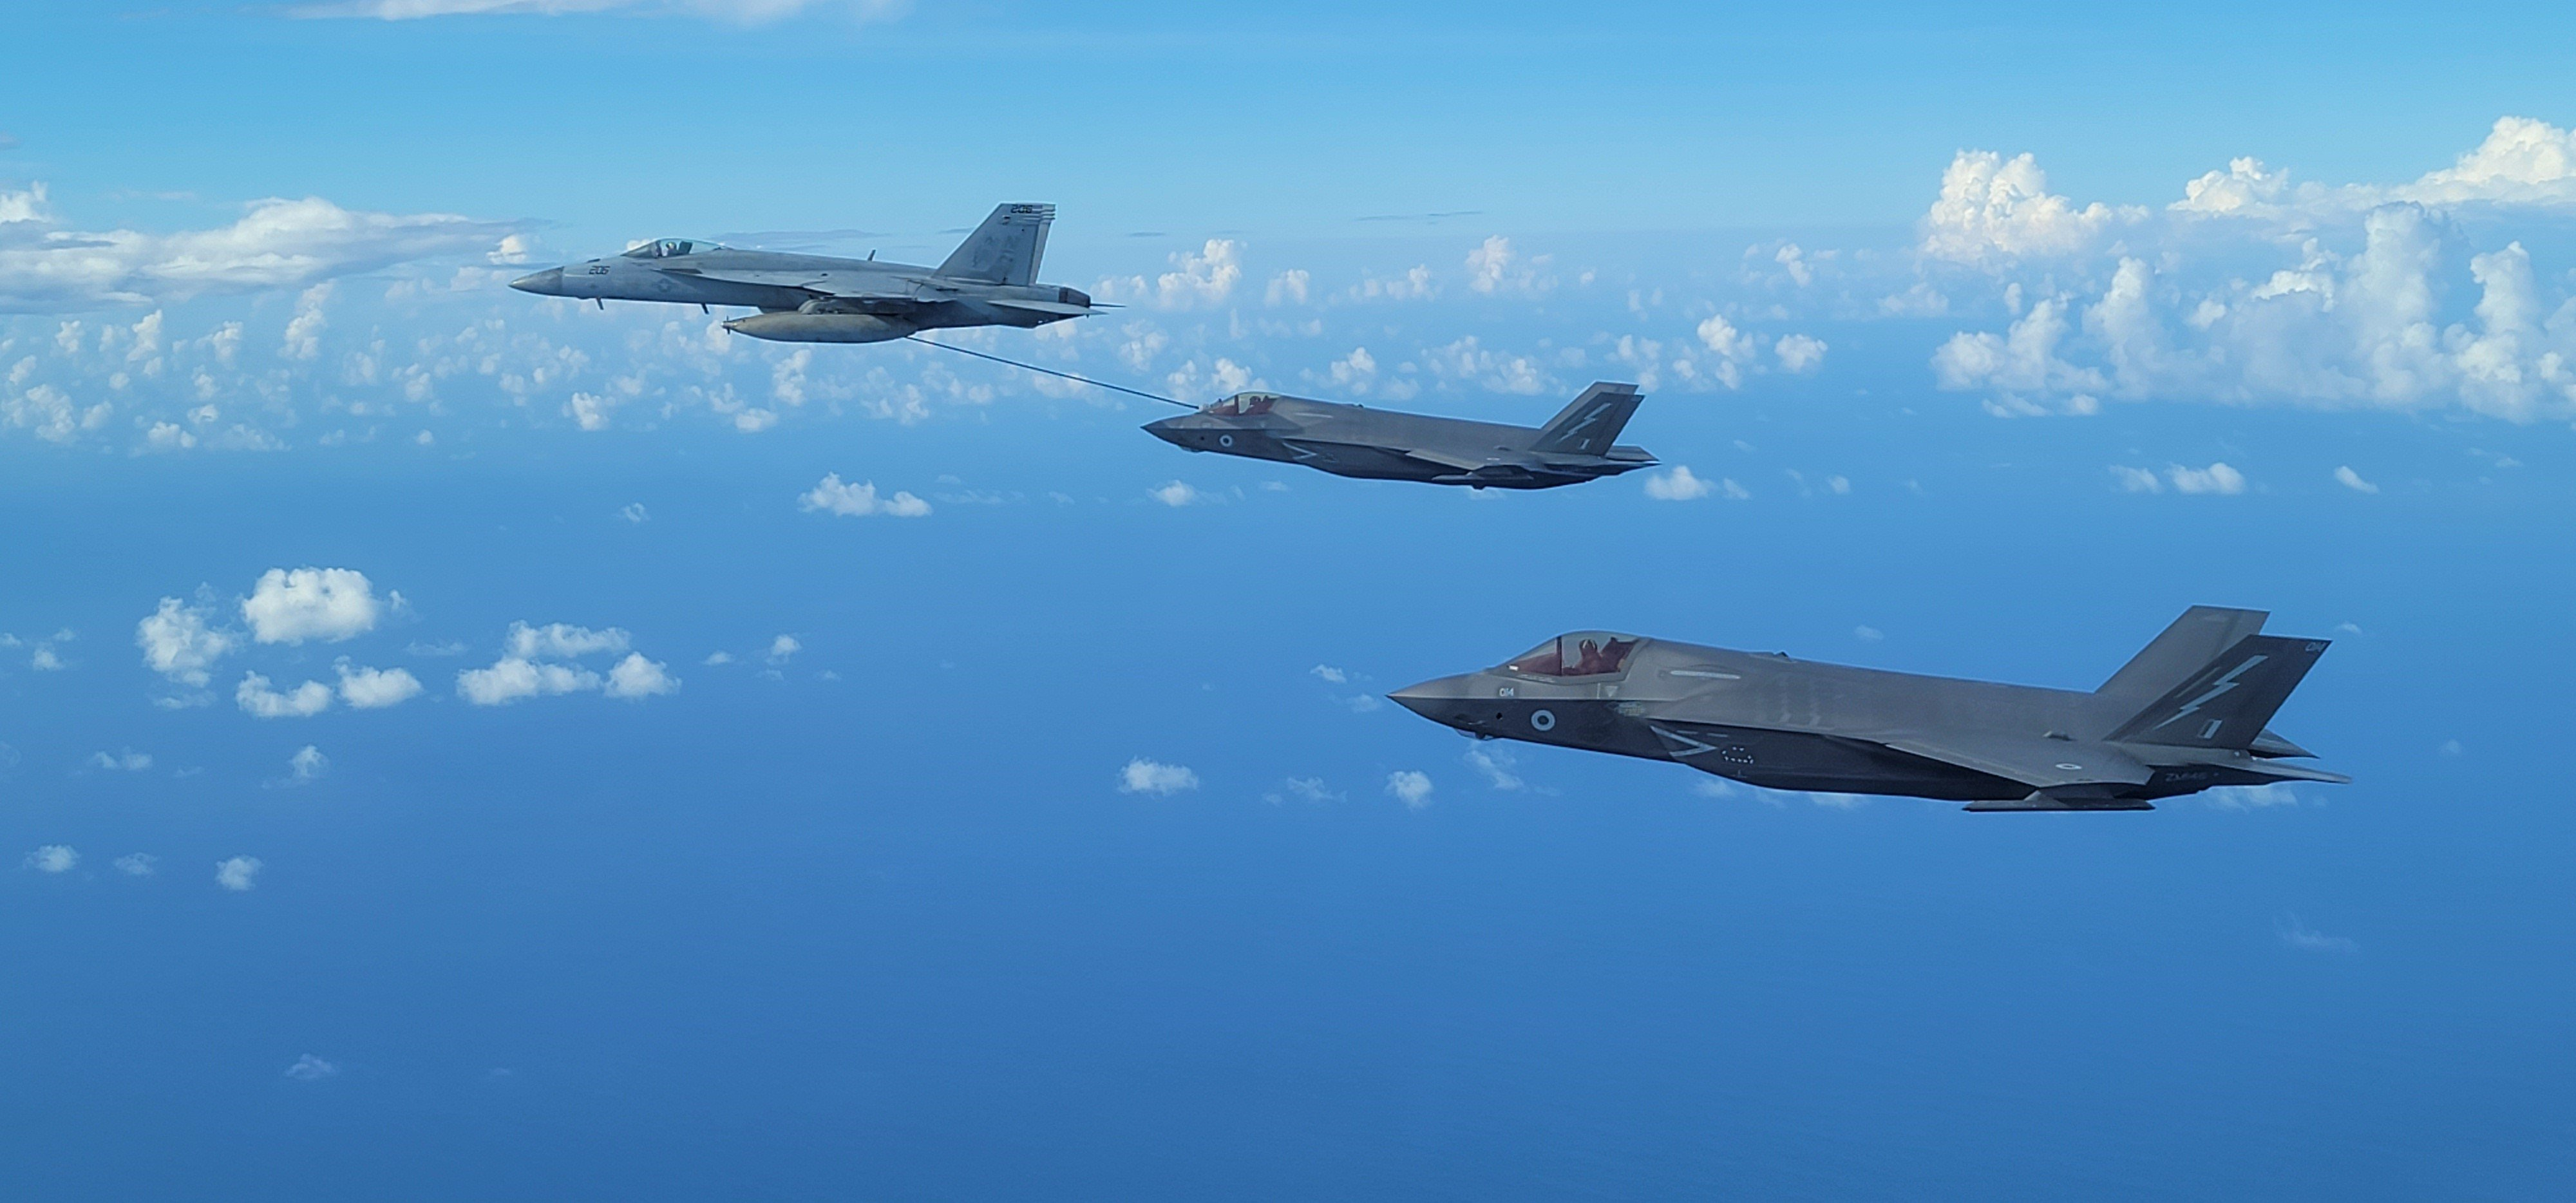 US Navy FA-18E Super Hornet refuels RAF F-35B in Indo-Pacific 10-21 [US Navy]